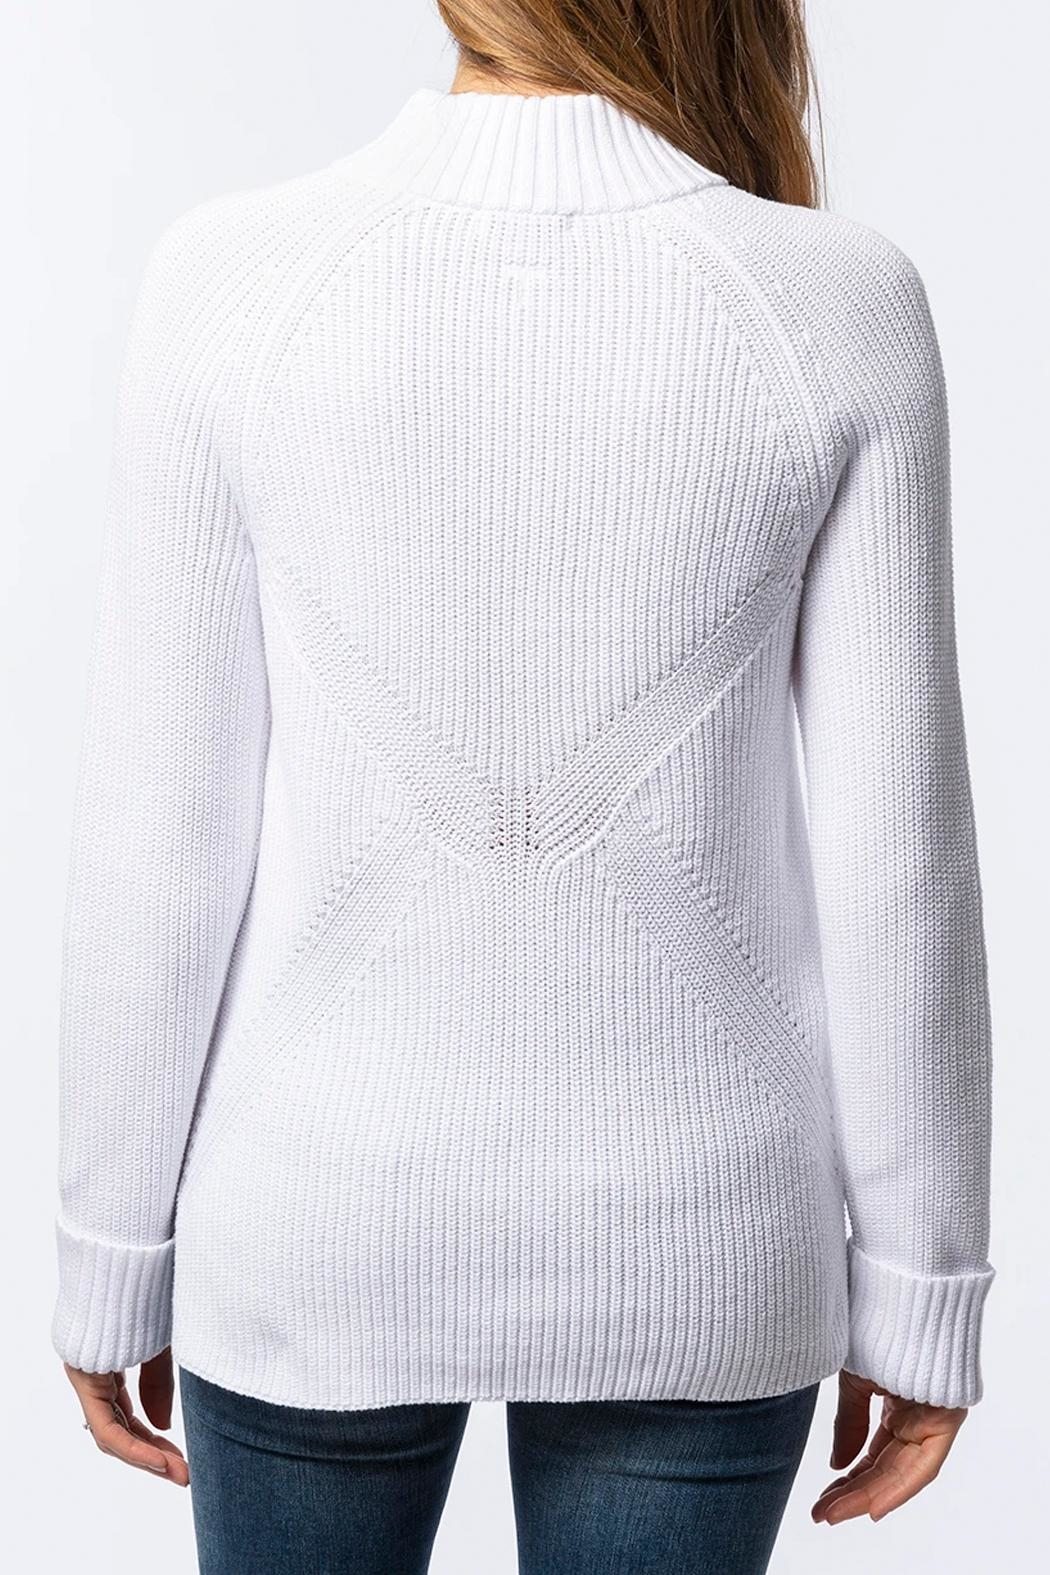 Tyler Boe Zip-Up Mock-Neck Sweater - Front Full Image